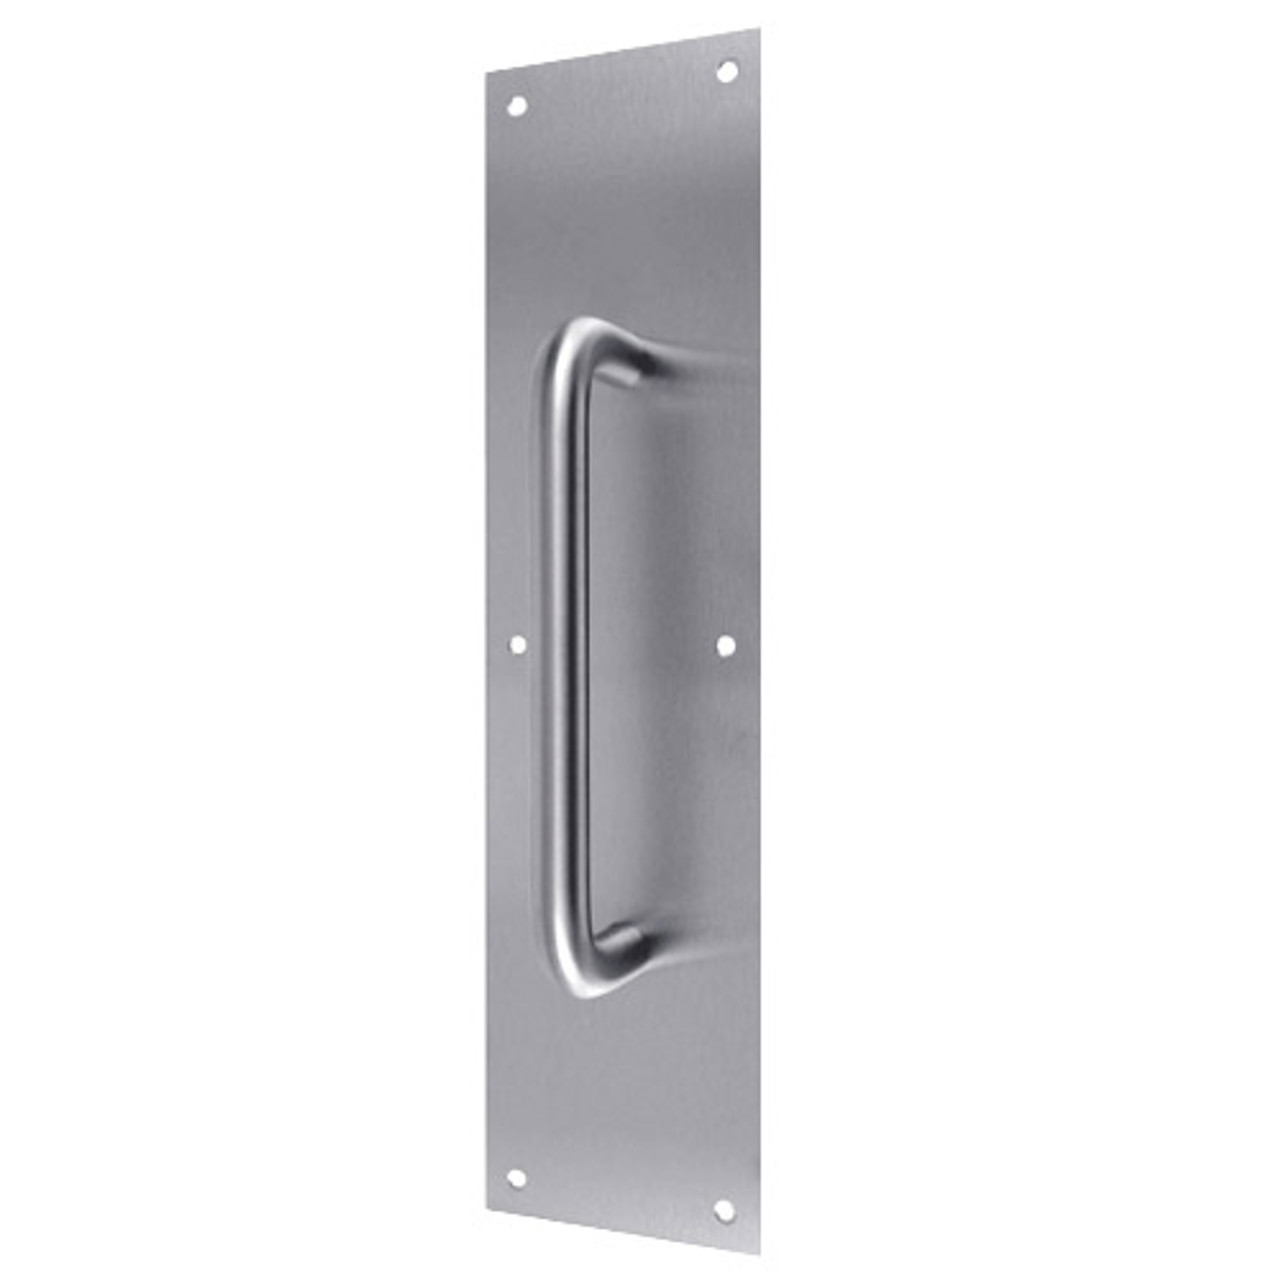 """7121-630 Don Jo Pull Plates with 1"""" Round Pulls in Satin Stainless Steel Finish"""